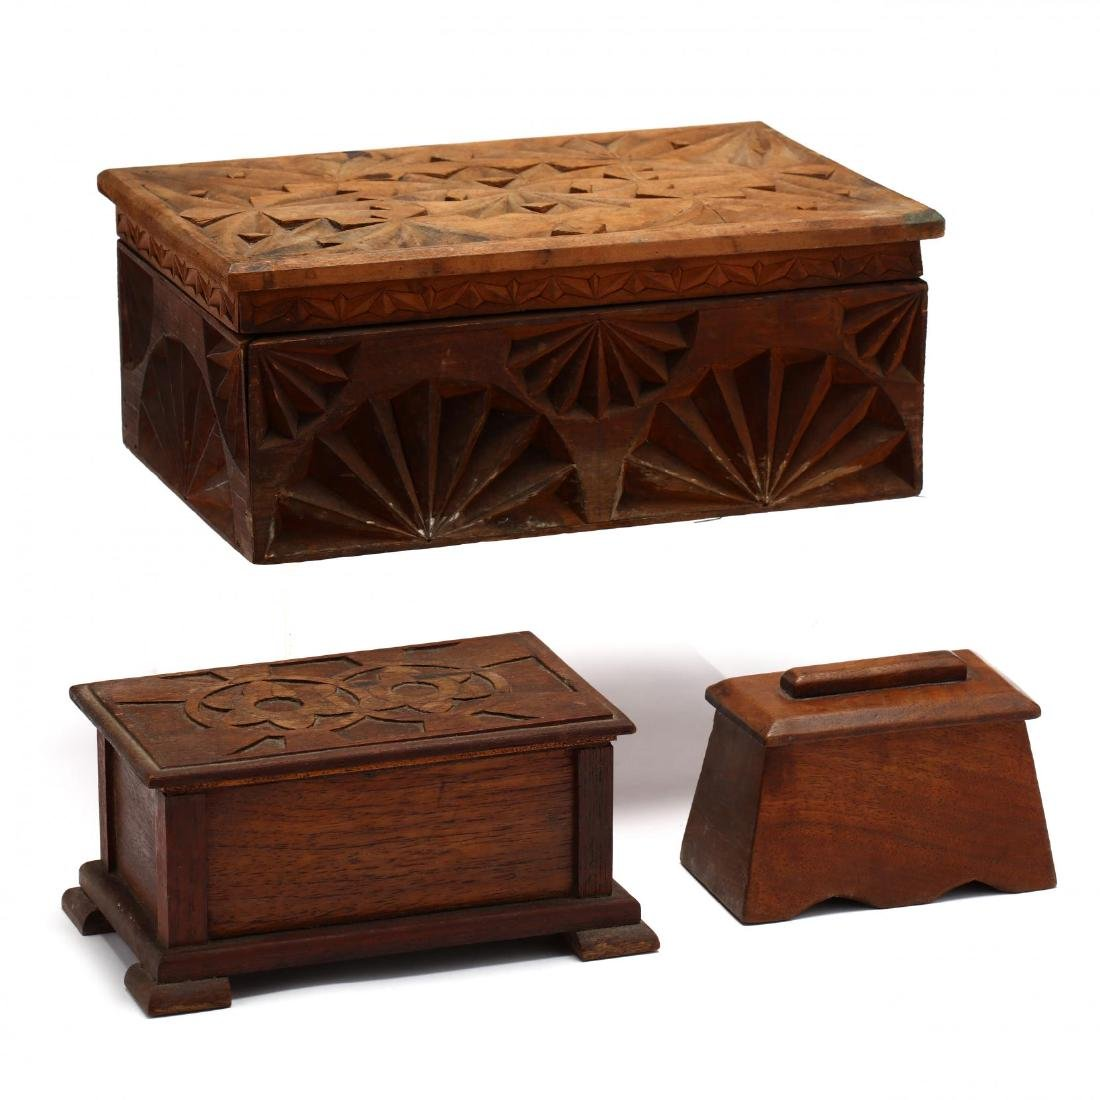 Three Vintage Folk Art Carved Wood Boxes